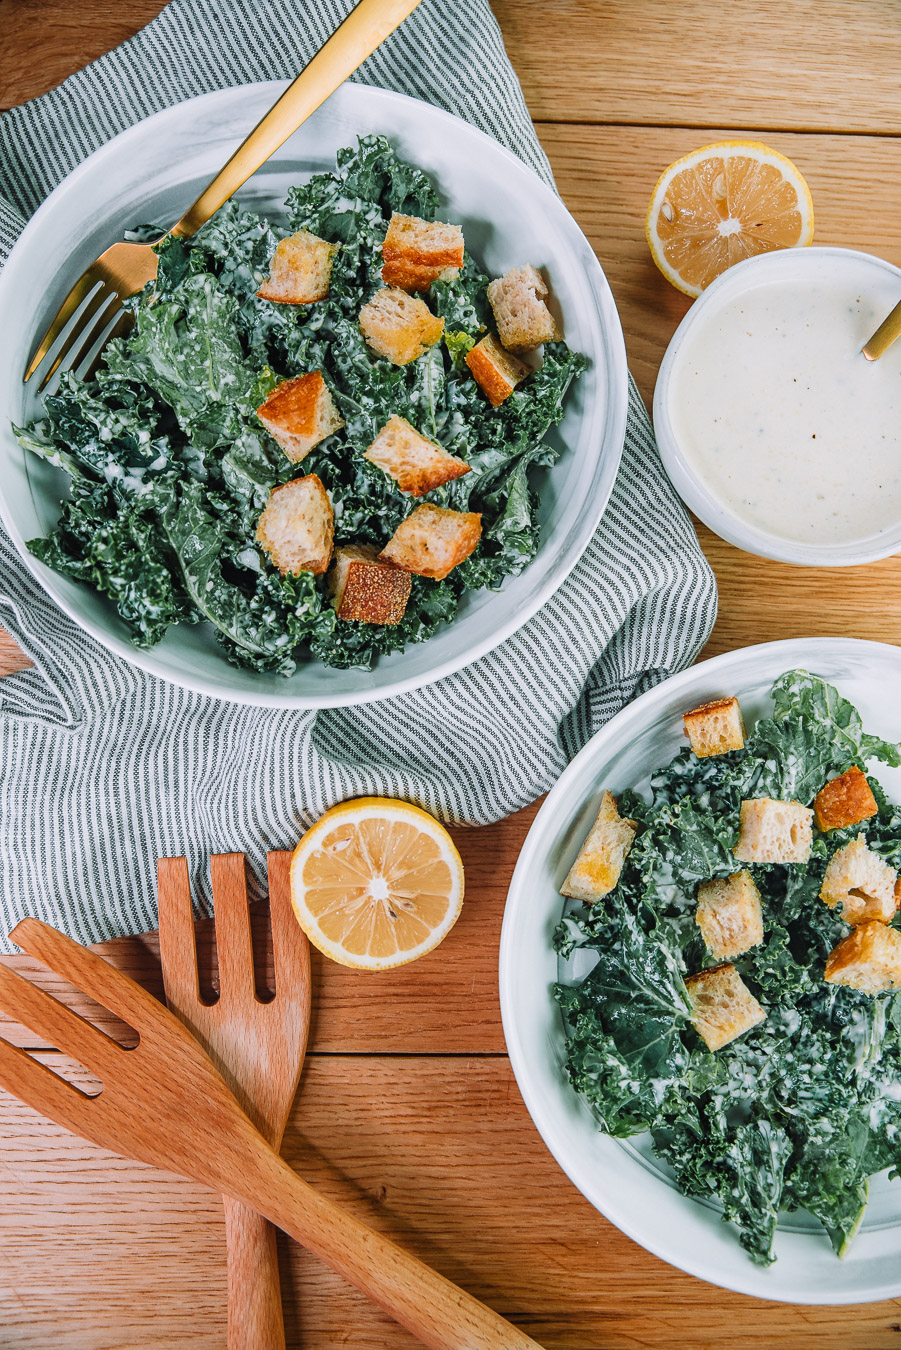 Kale Caesar Salad with fresh baked croutons in 2 white bowls on a wood table with 2 salad tongs, lemons, and a kitchen towel. Kale Caesar salad recipe by Farmer's Market Society.  Market Inspired Meals.